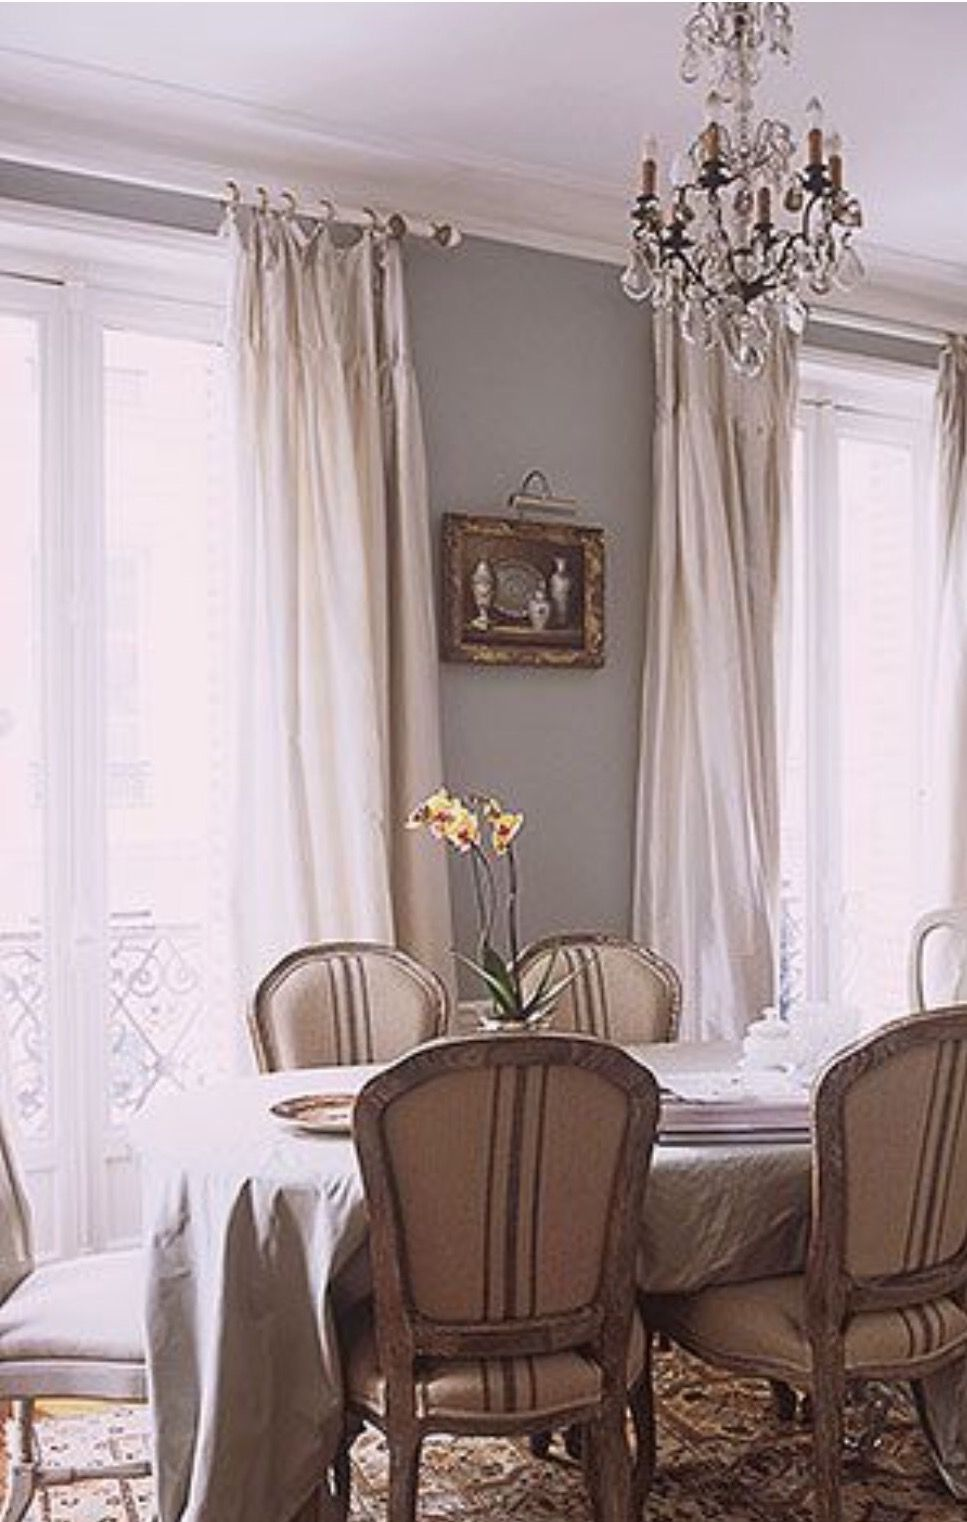 Dining room country curtains - French Cloth Chairs French Blue Walls Silk Curtains Wrought Iron And Crystal French Dining Roomsbeautiful